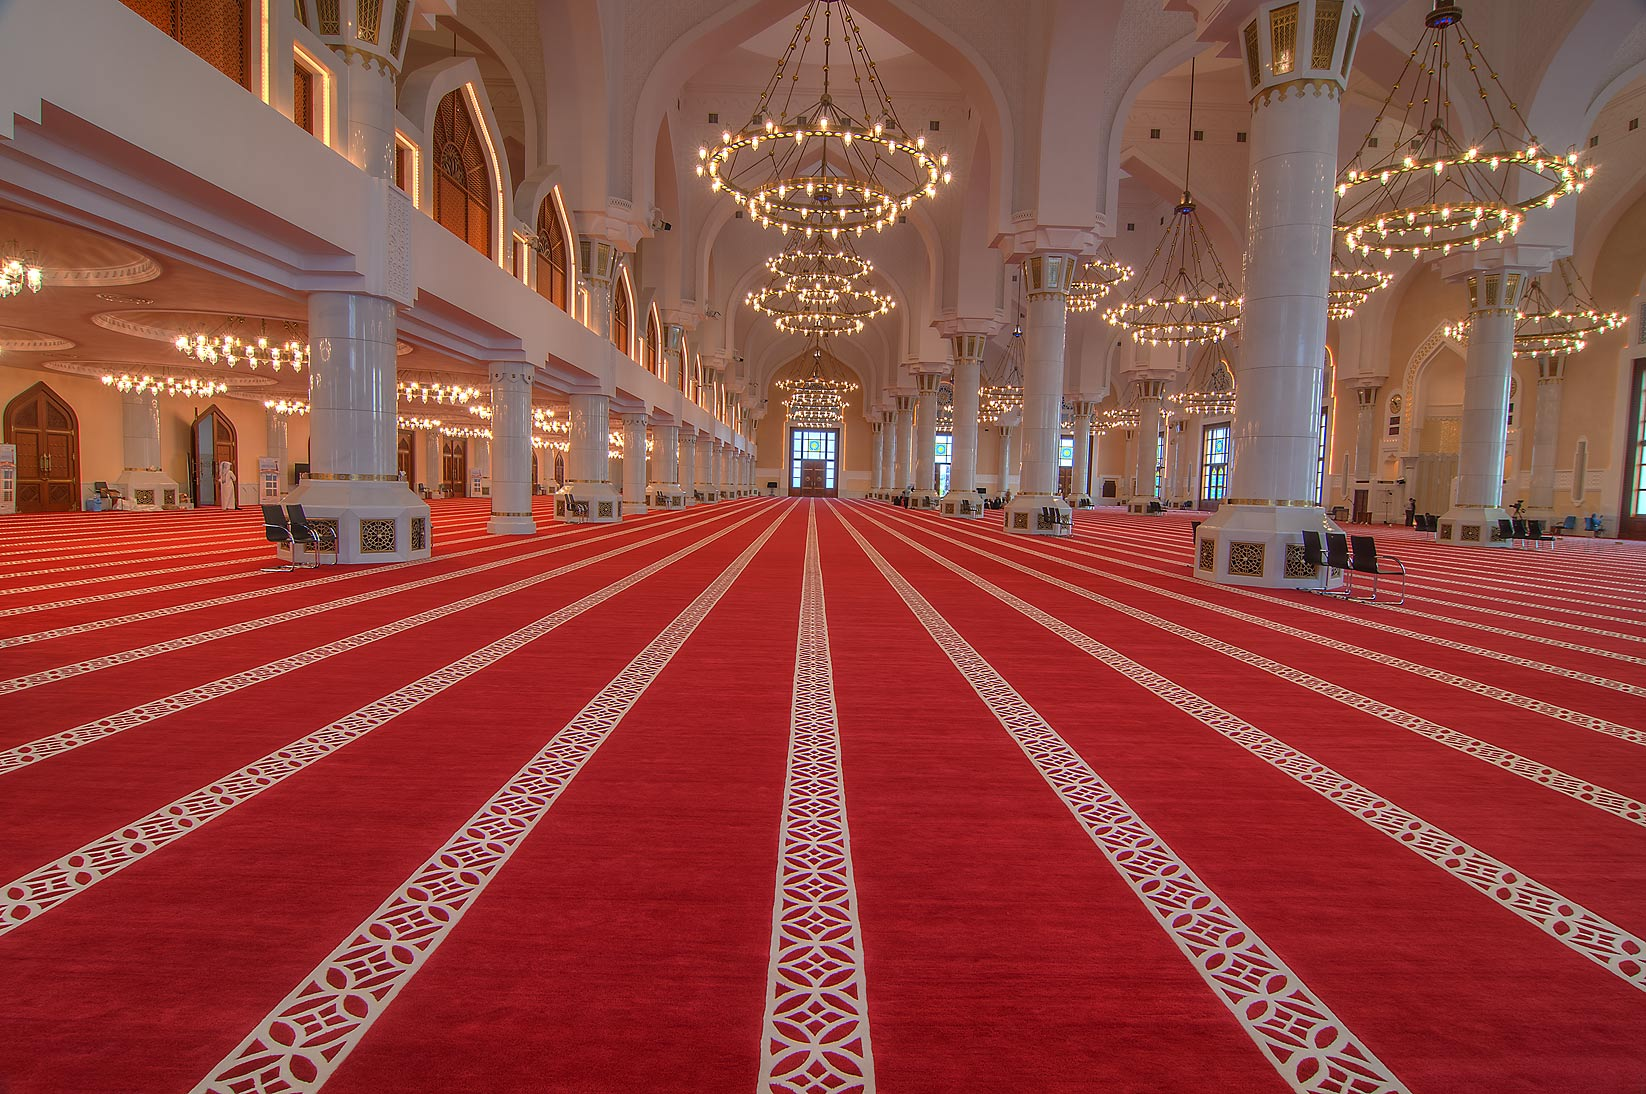 Red carpet inside prayer hall (musallah) showing...Ibn Abdul Wahhab Mosque). Doha, Qatar